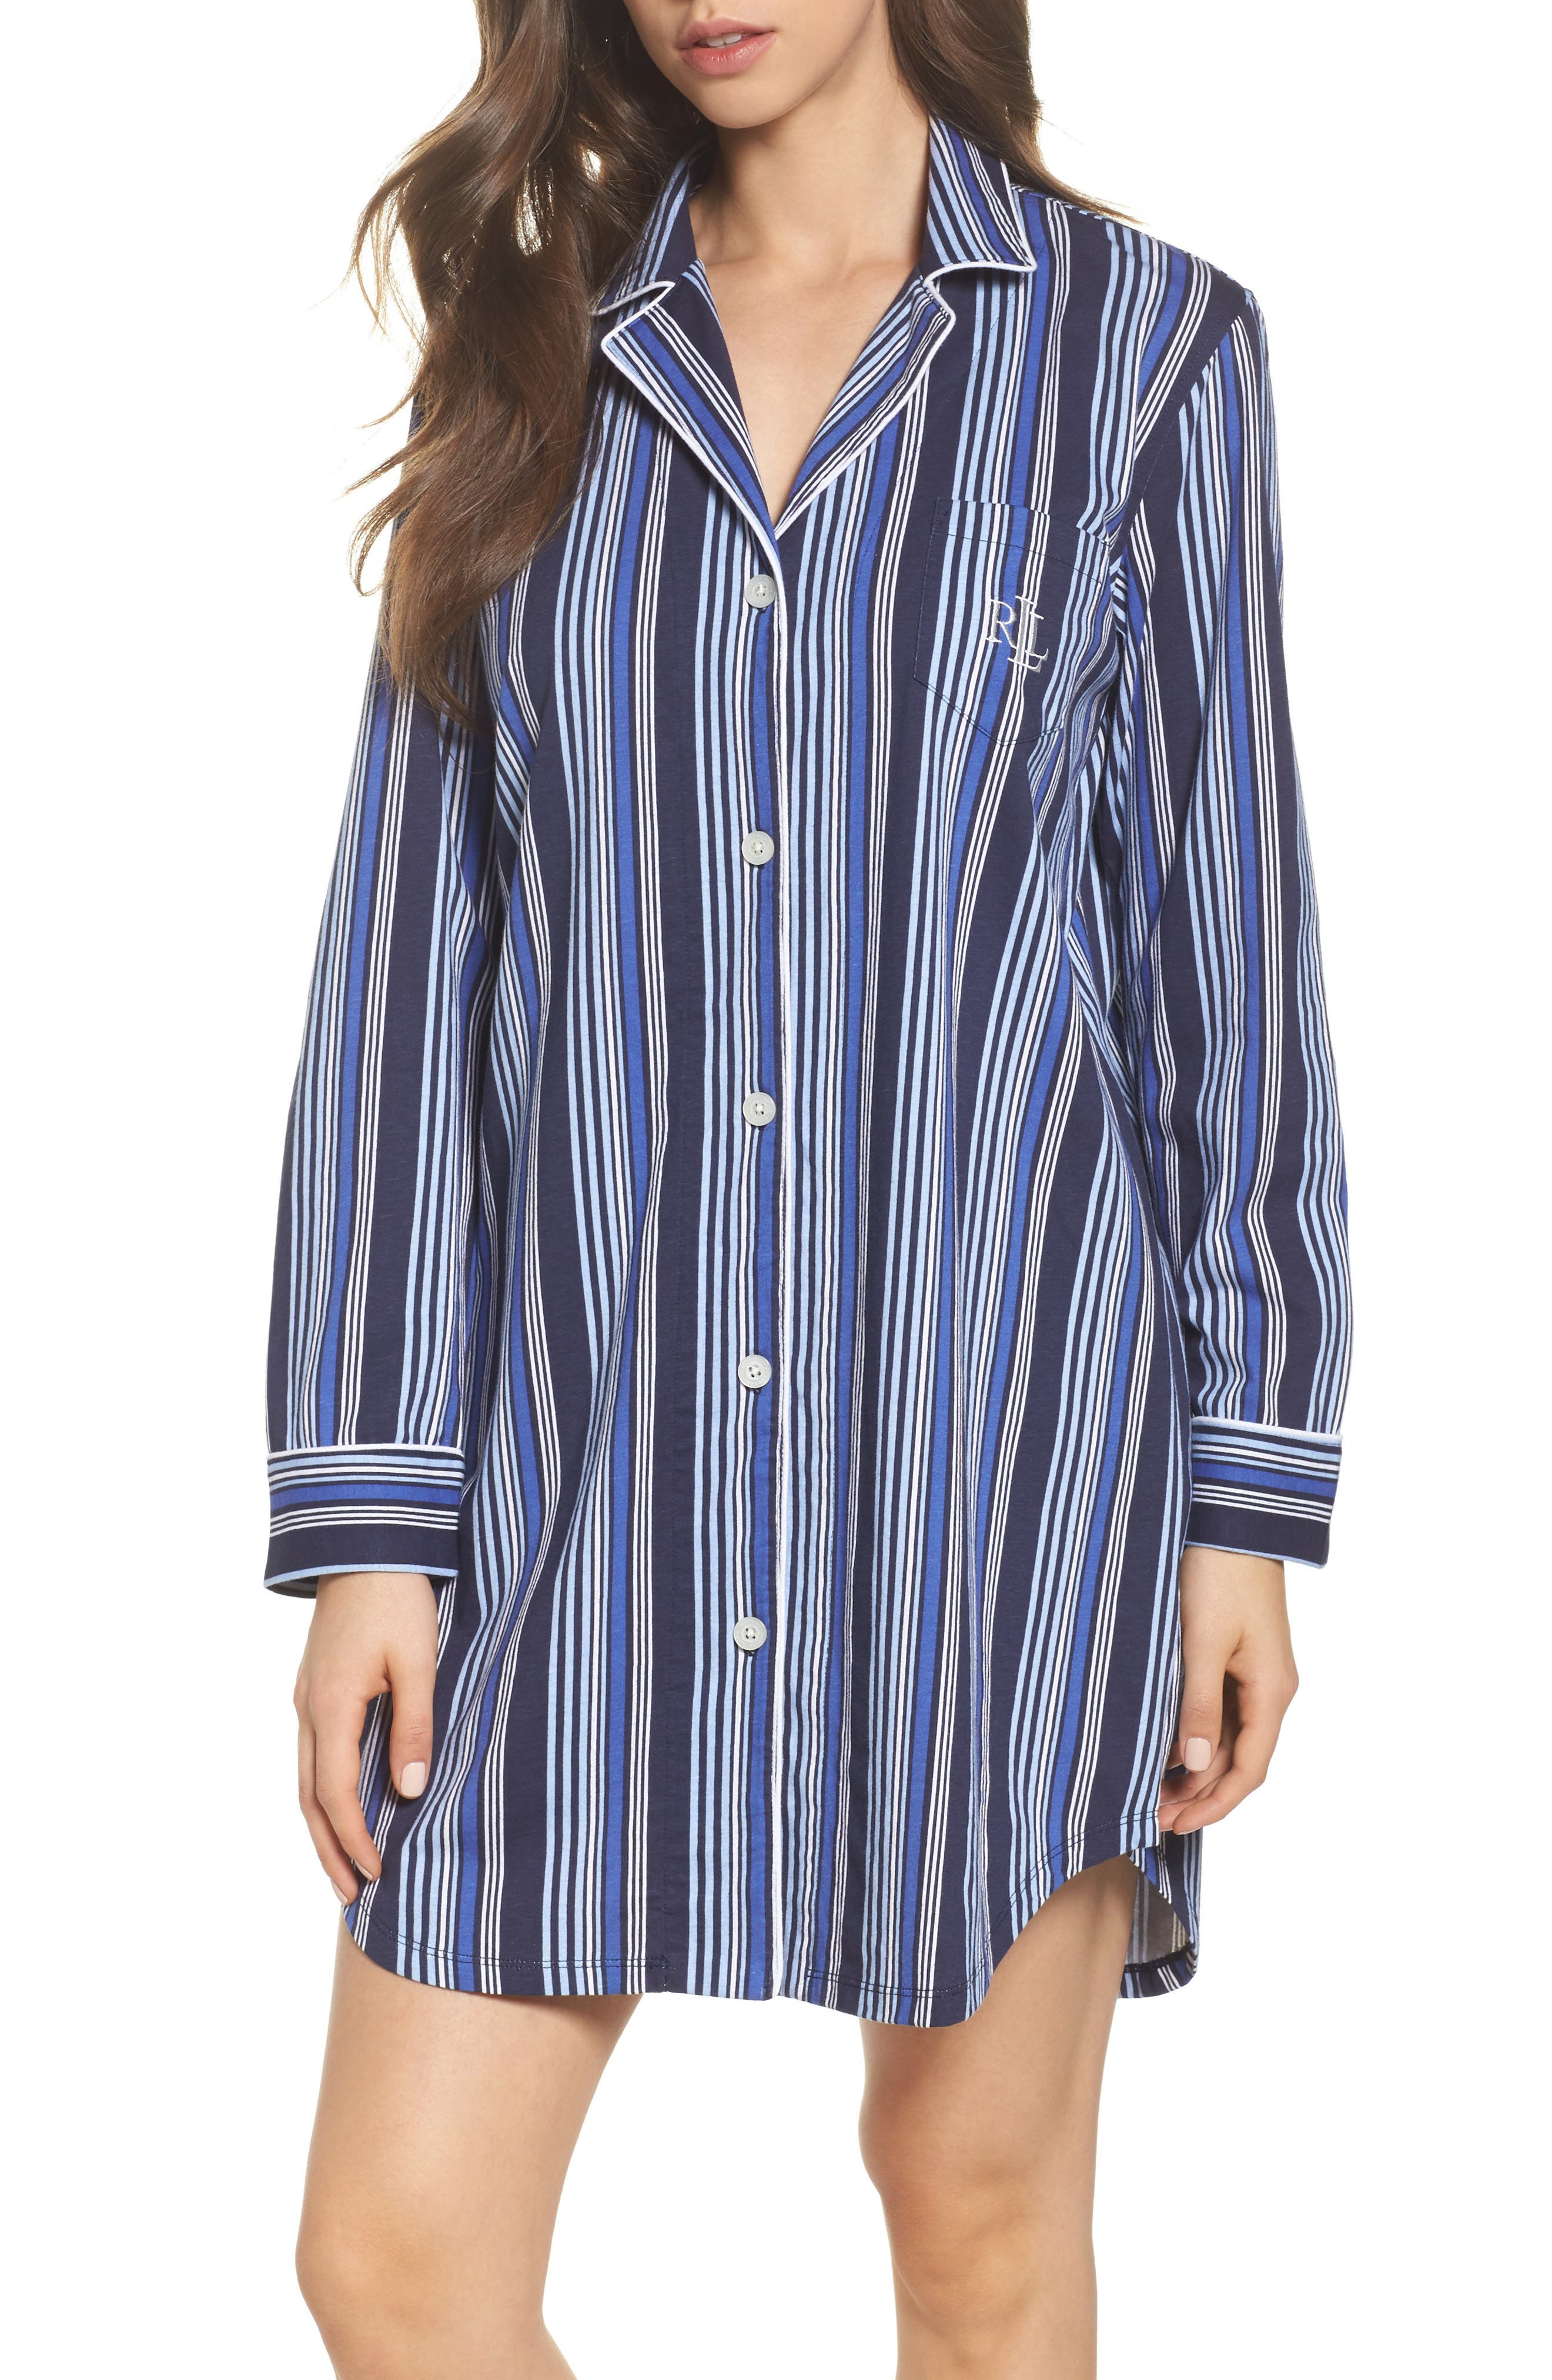 Stripe Sleep Shirt,                             Main thumbnail 1, color,                             486